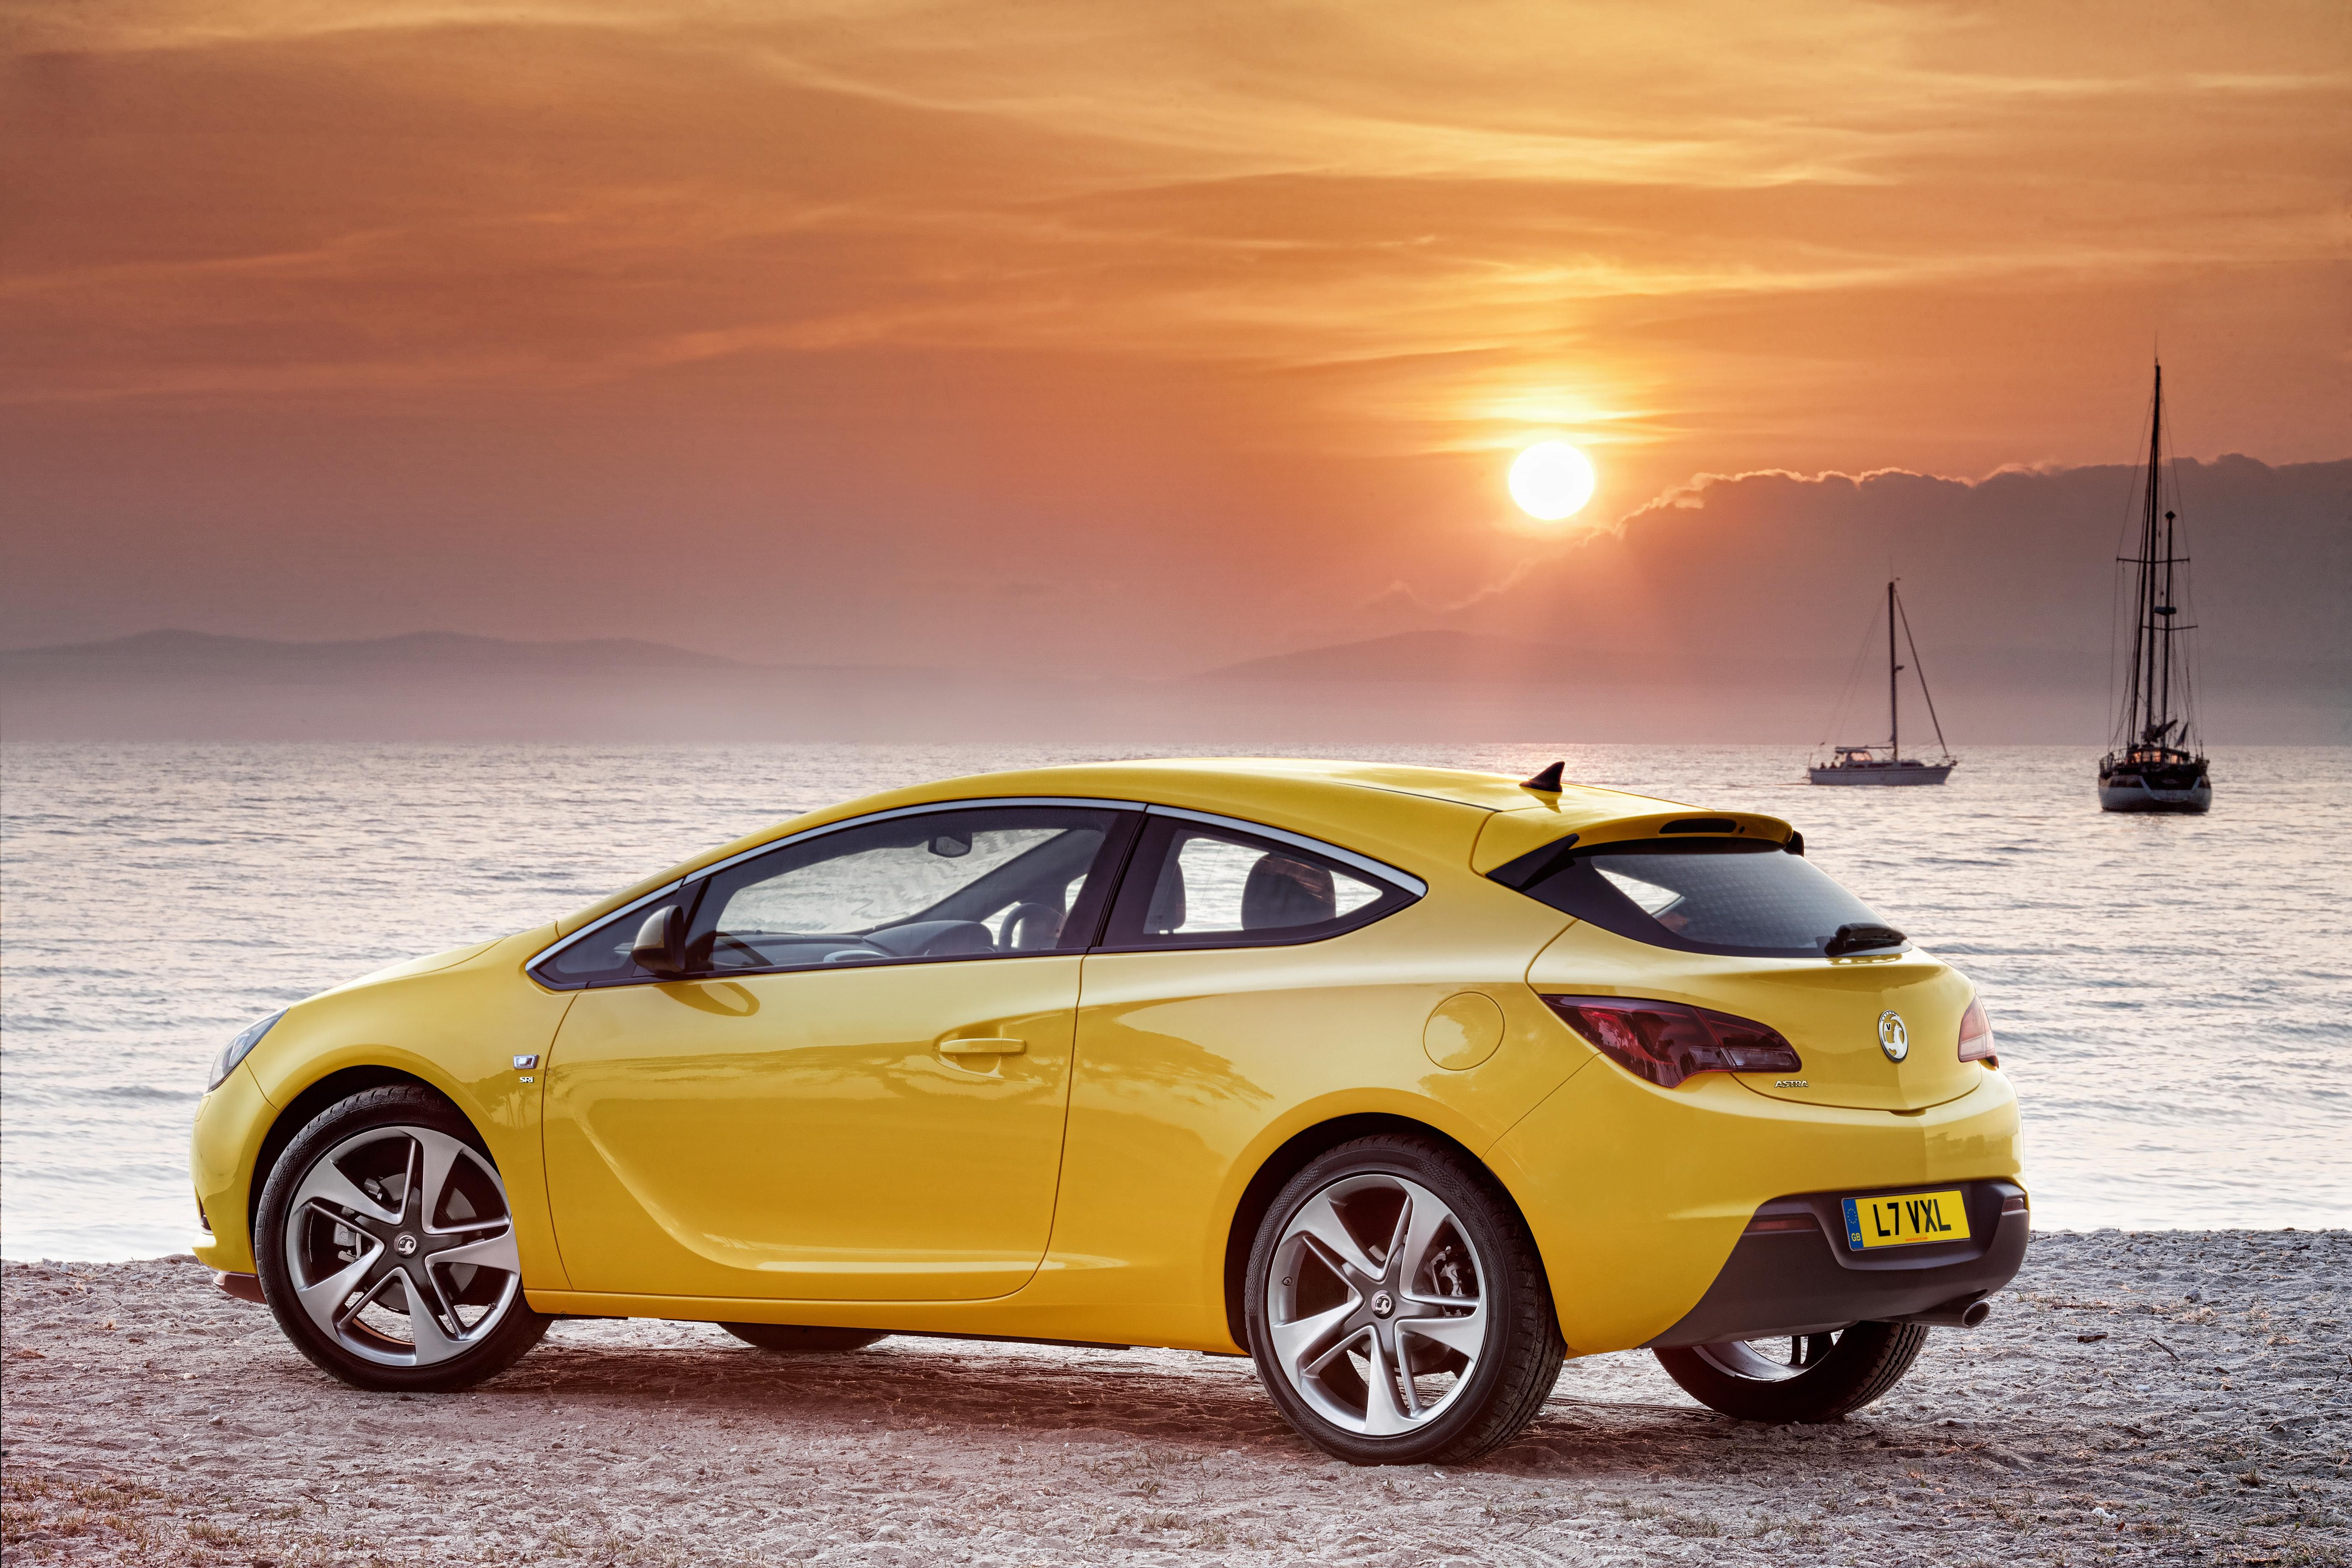 vauxhall astra gtc 1 4 turbo car write ups. Black Bedroom Furniture Sets. Home Design Ideas